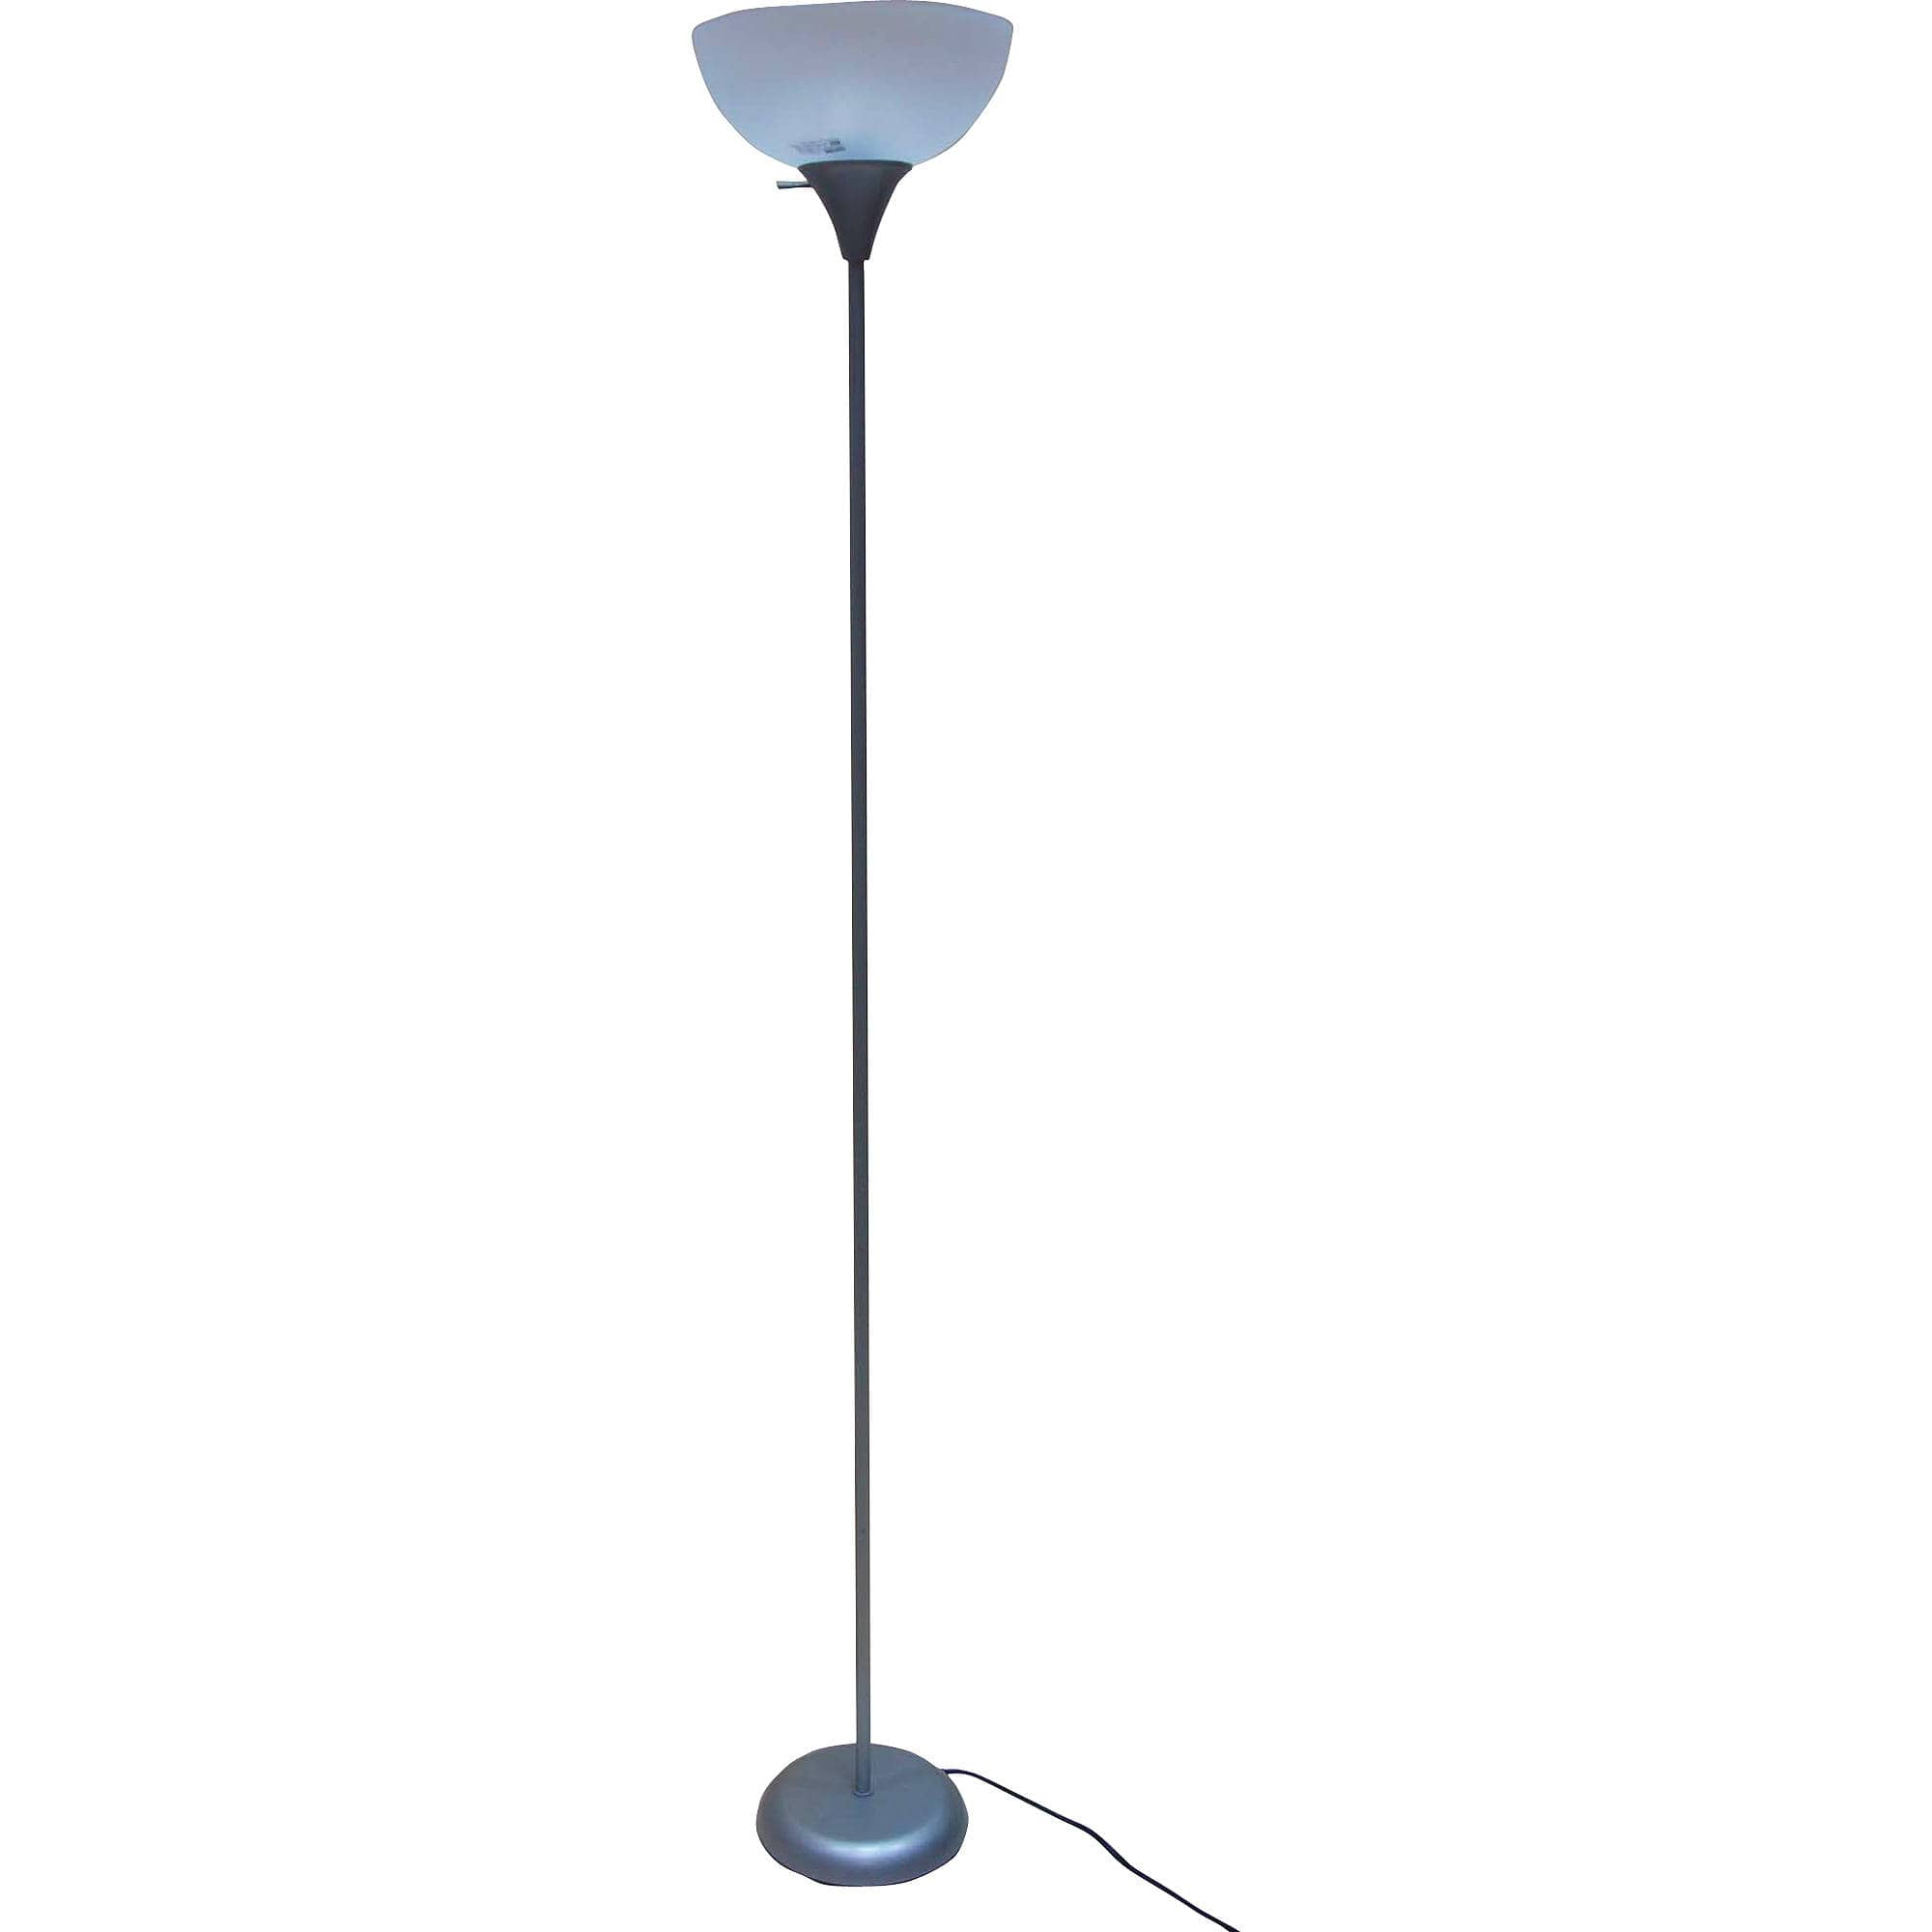 Mainstays 71 inch Floor Lamp, Silver -  $3 with pickup discount - YMMV